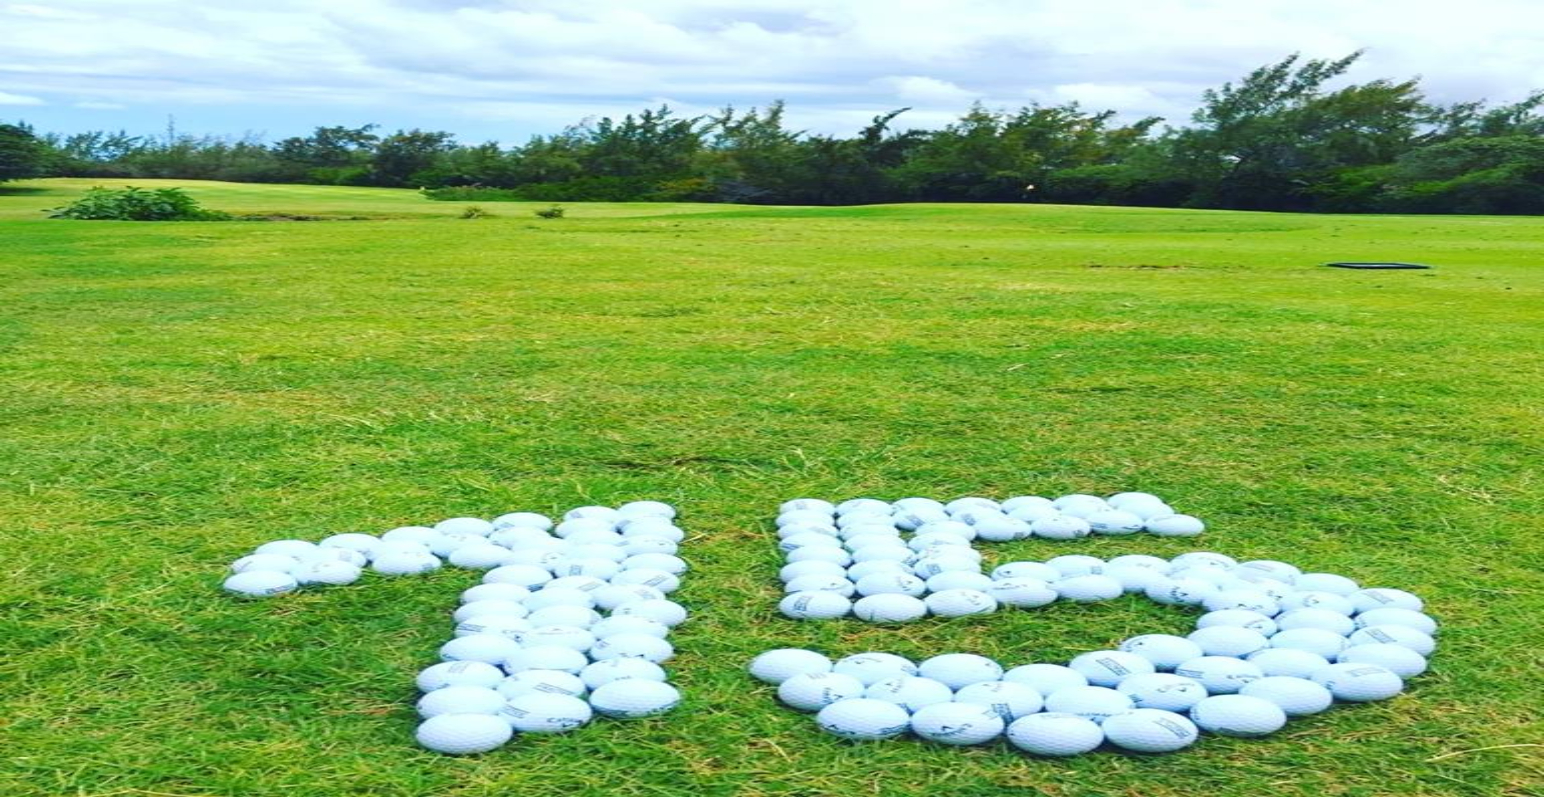 Golf Balls depicting number 15